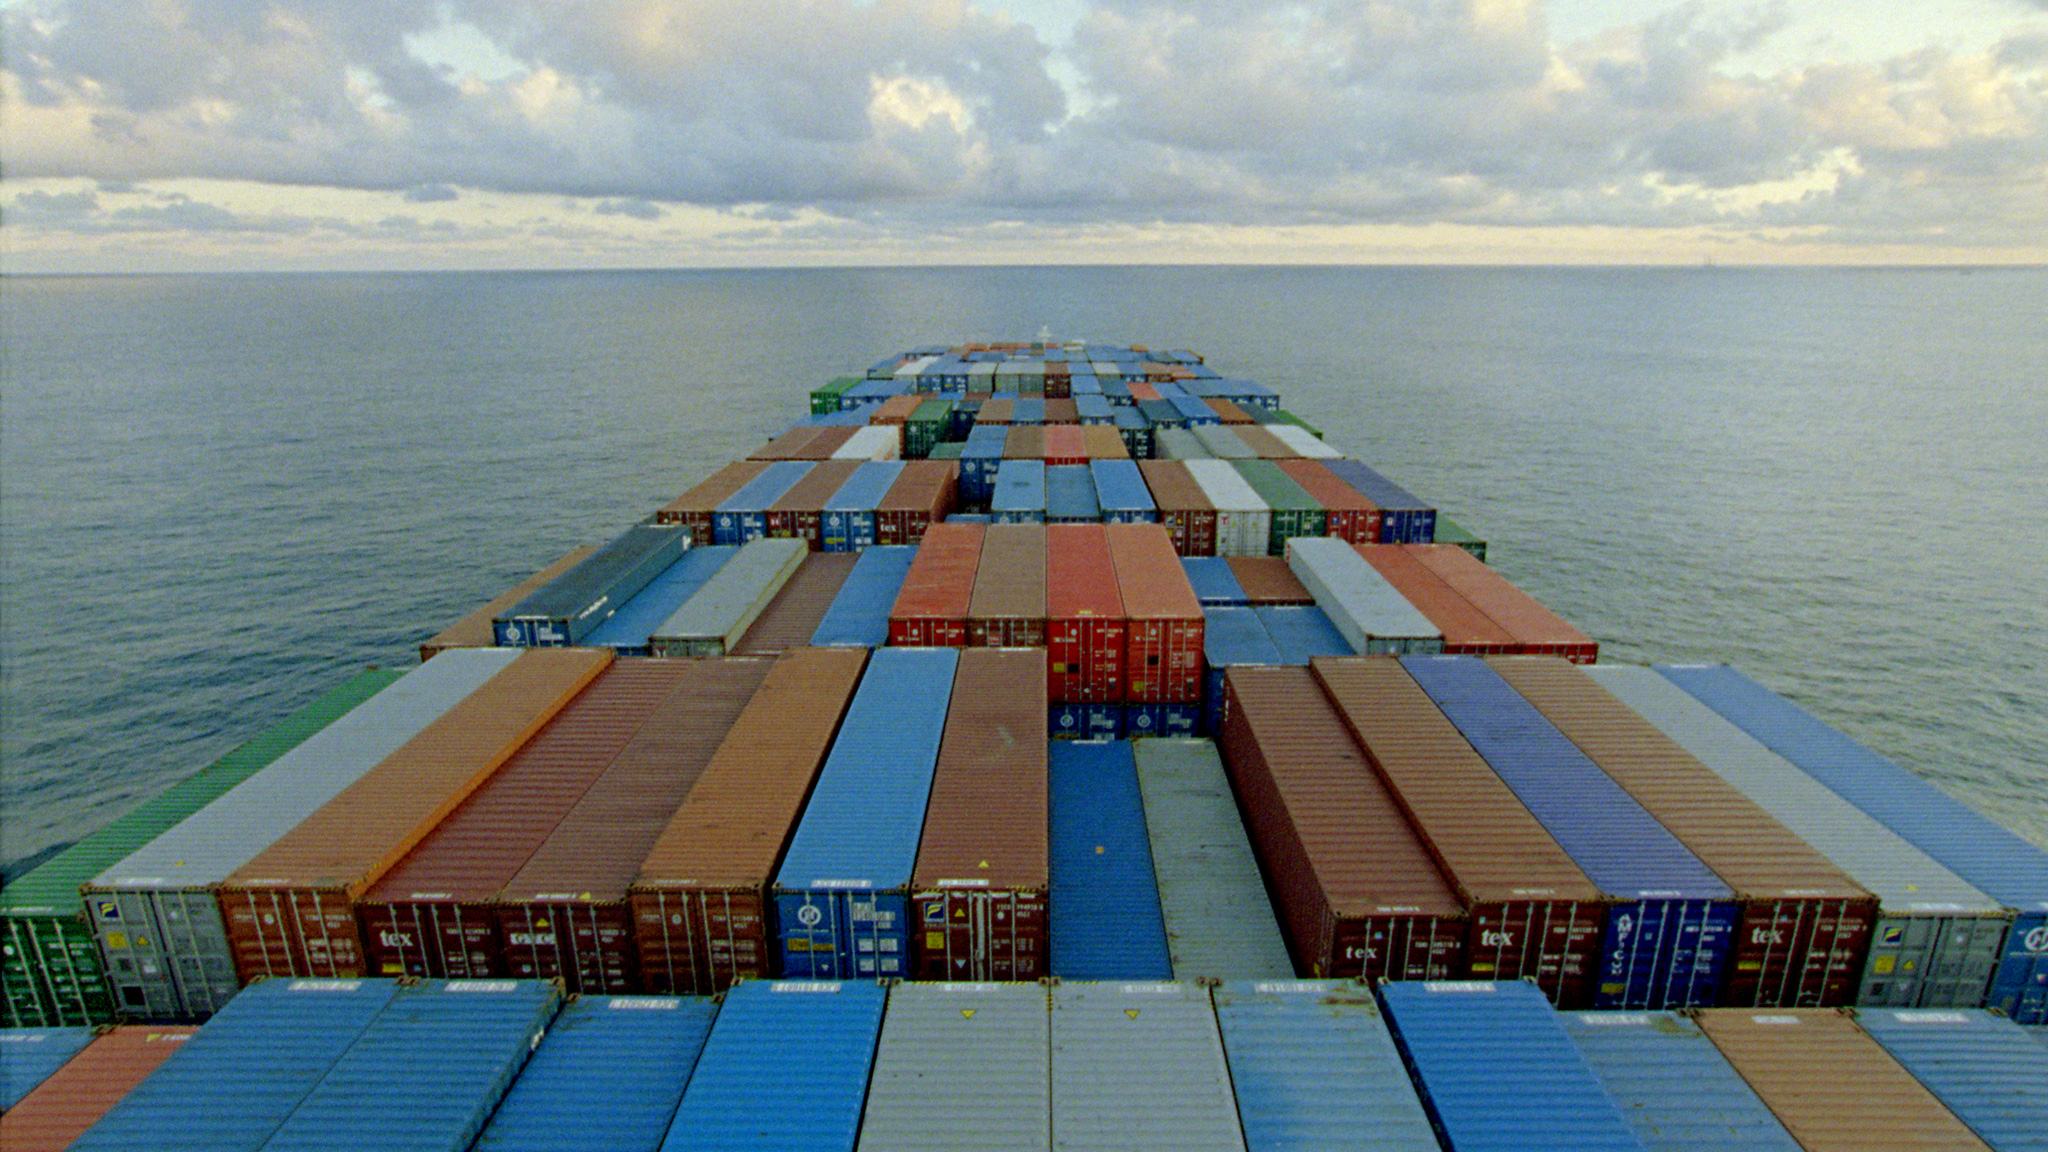 Still from Noël Burch and Allan Sekula's  The Forgotten Spaces  (2012).